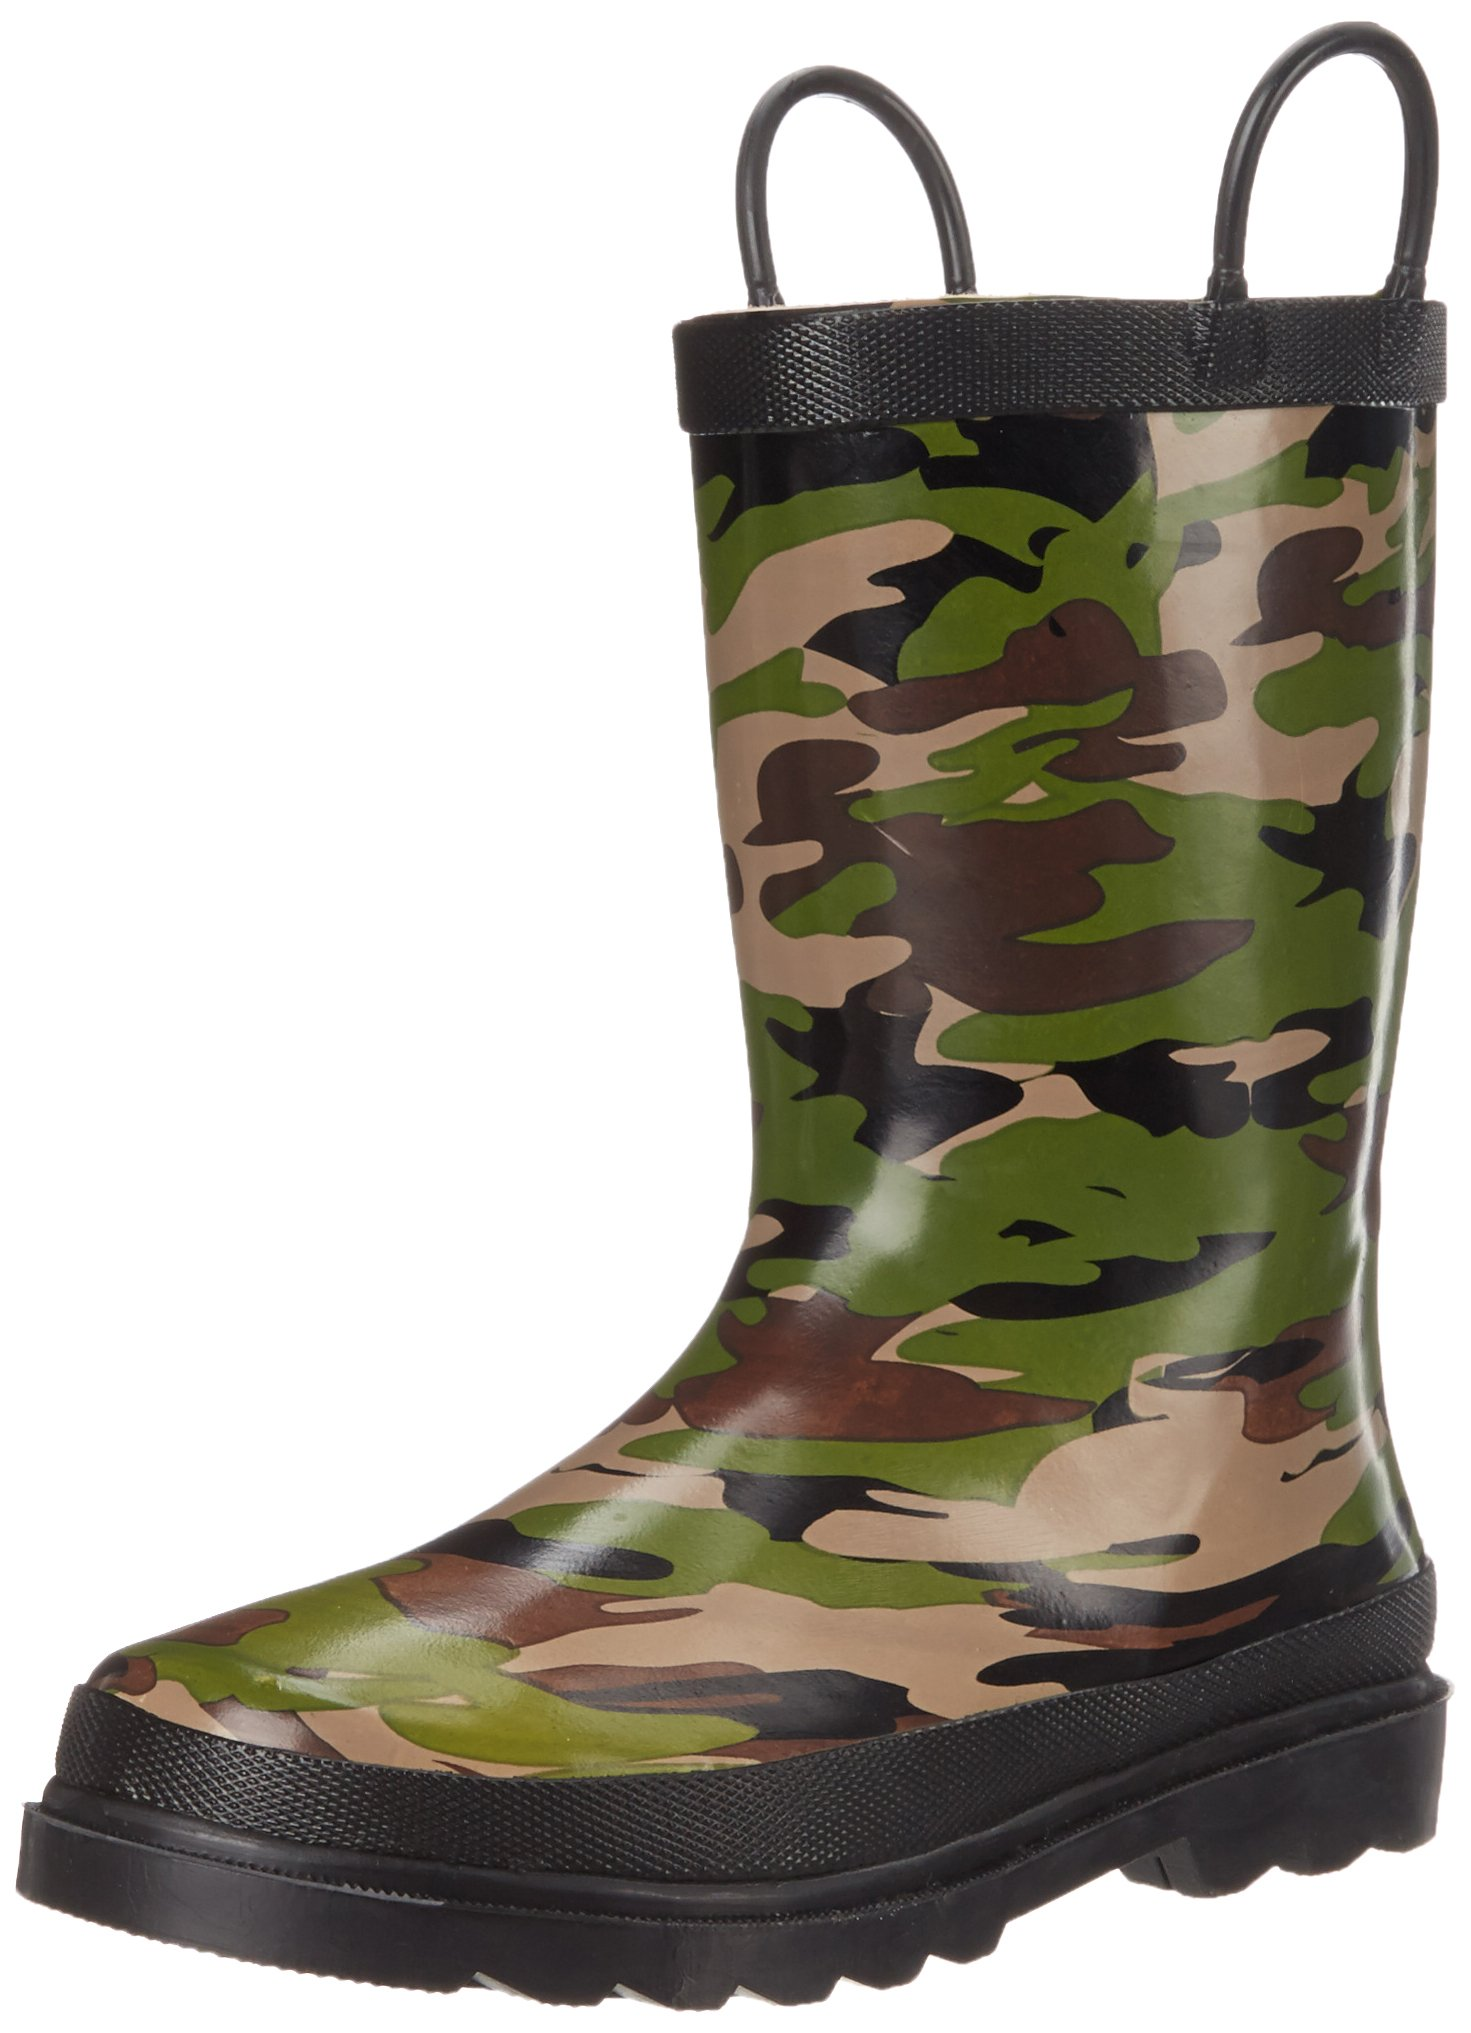 Western Chief Boys Waterproof Printed Rain Boot with Easy Pull On Handles, Camo, 3 M US Little Kid